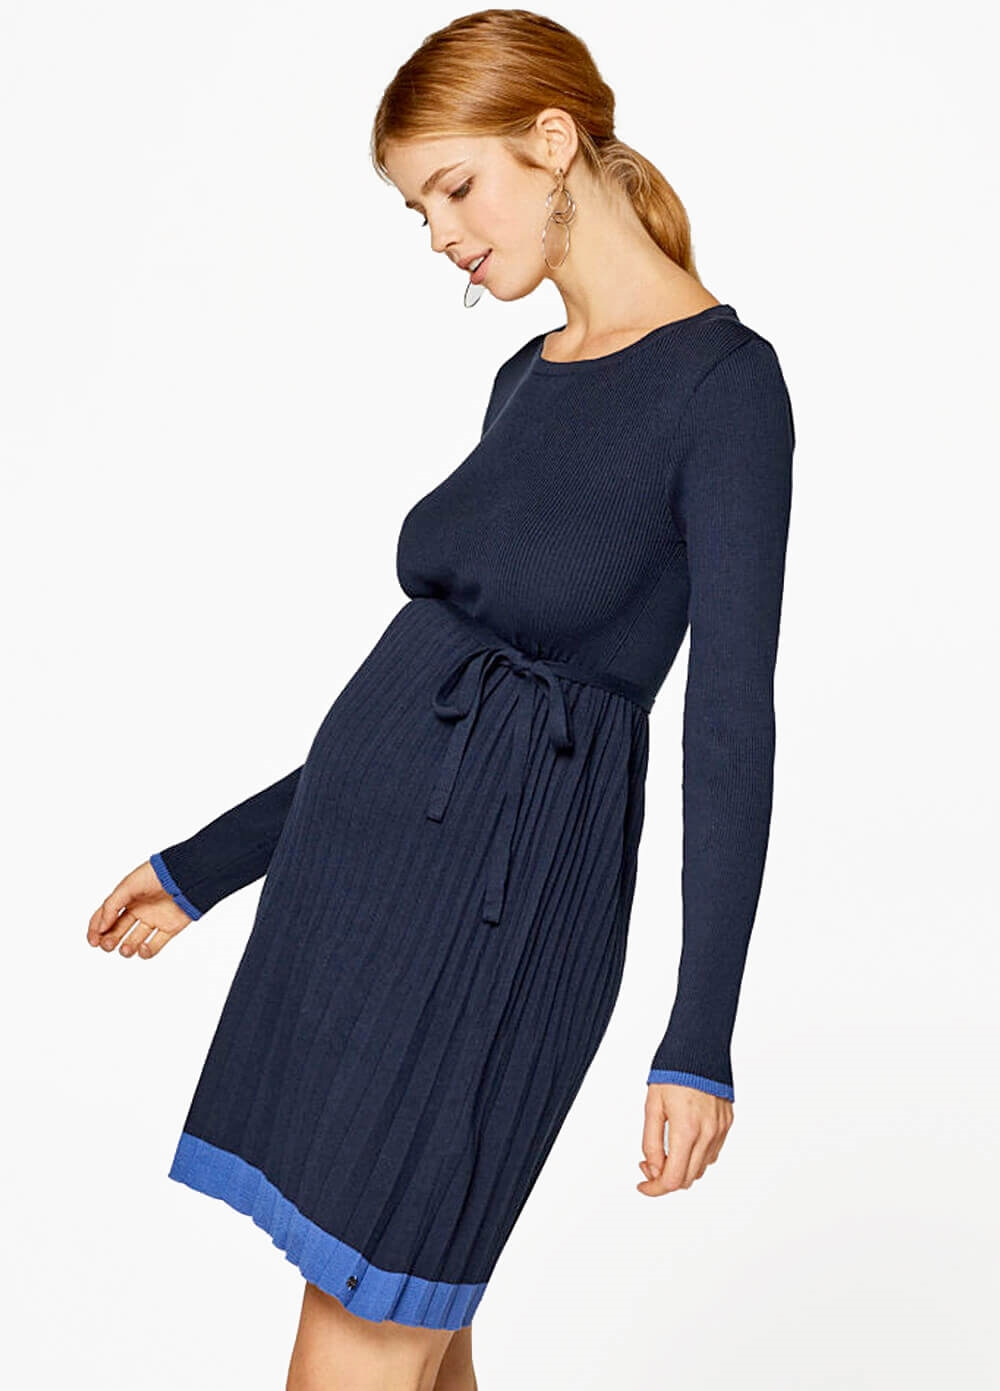 Queen Bee Pleated Knit Maternity Dress by Esprit